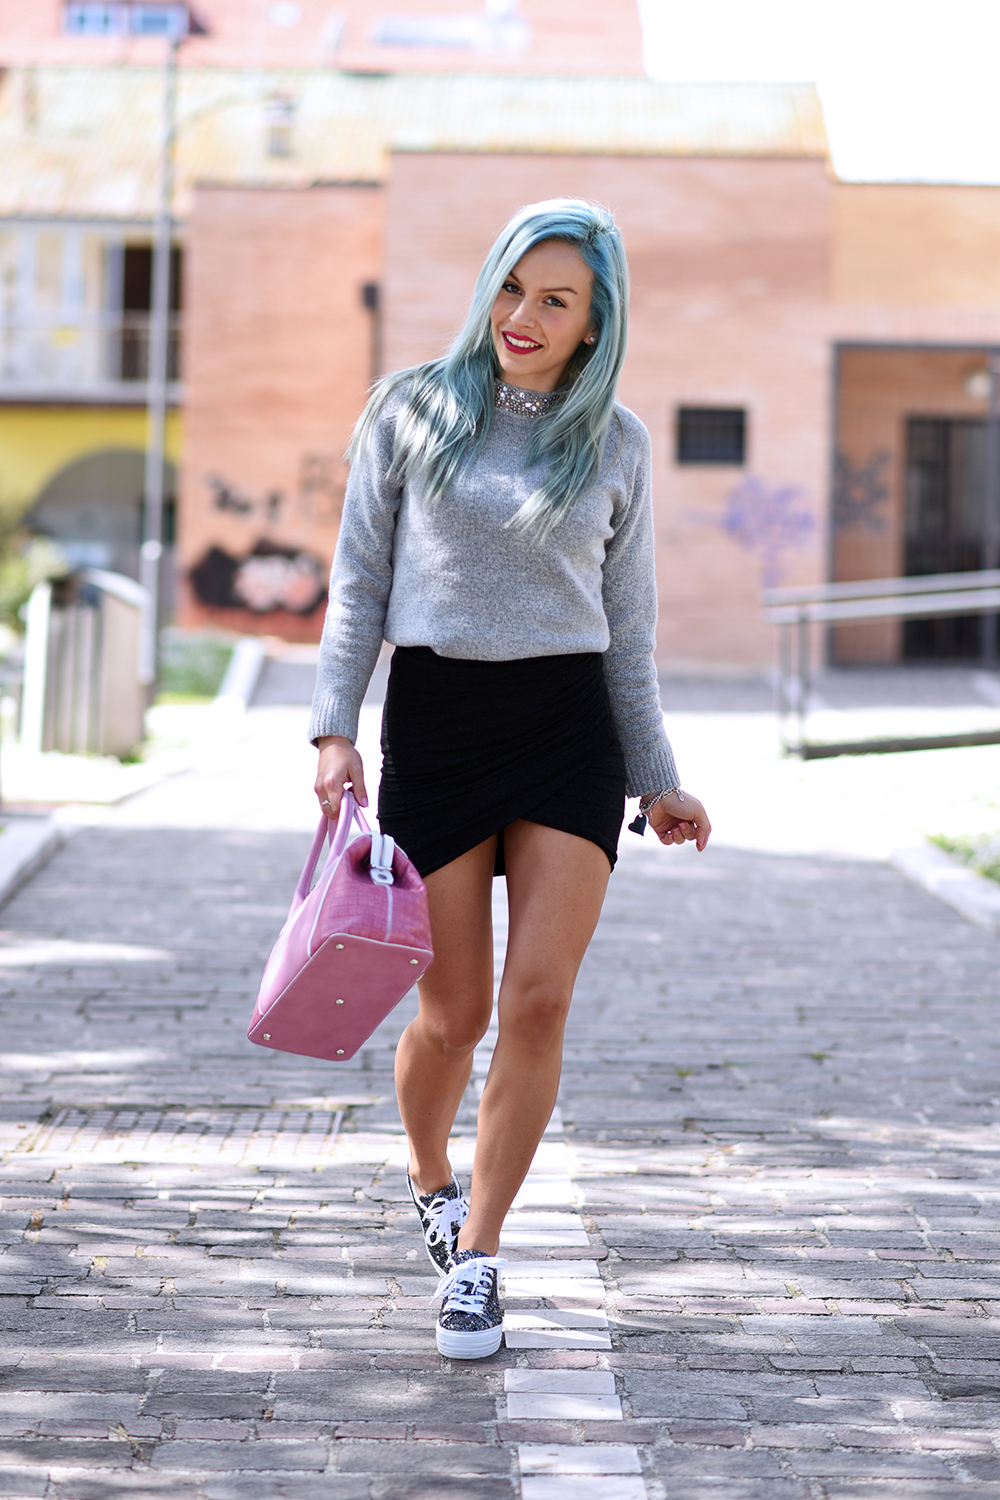 Cult Shoes scarpe primavera estate 2015, capelli colorati tendenze PE 2015, crazy color hair, pastel blu hair - outfit fashion blogger It-Girl by Eleonora Petrella